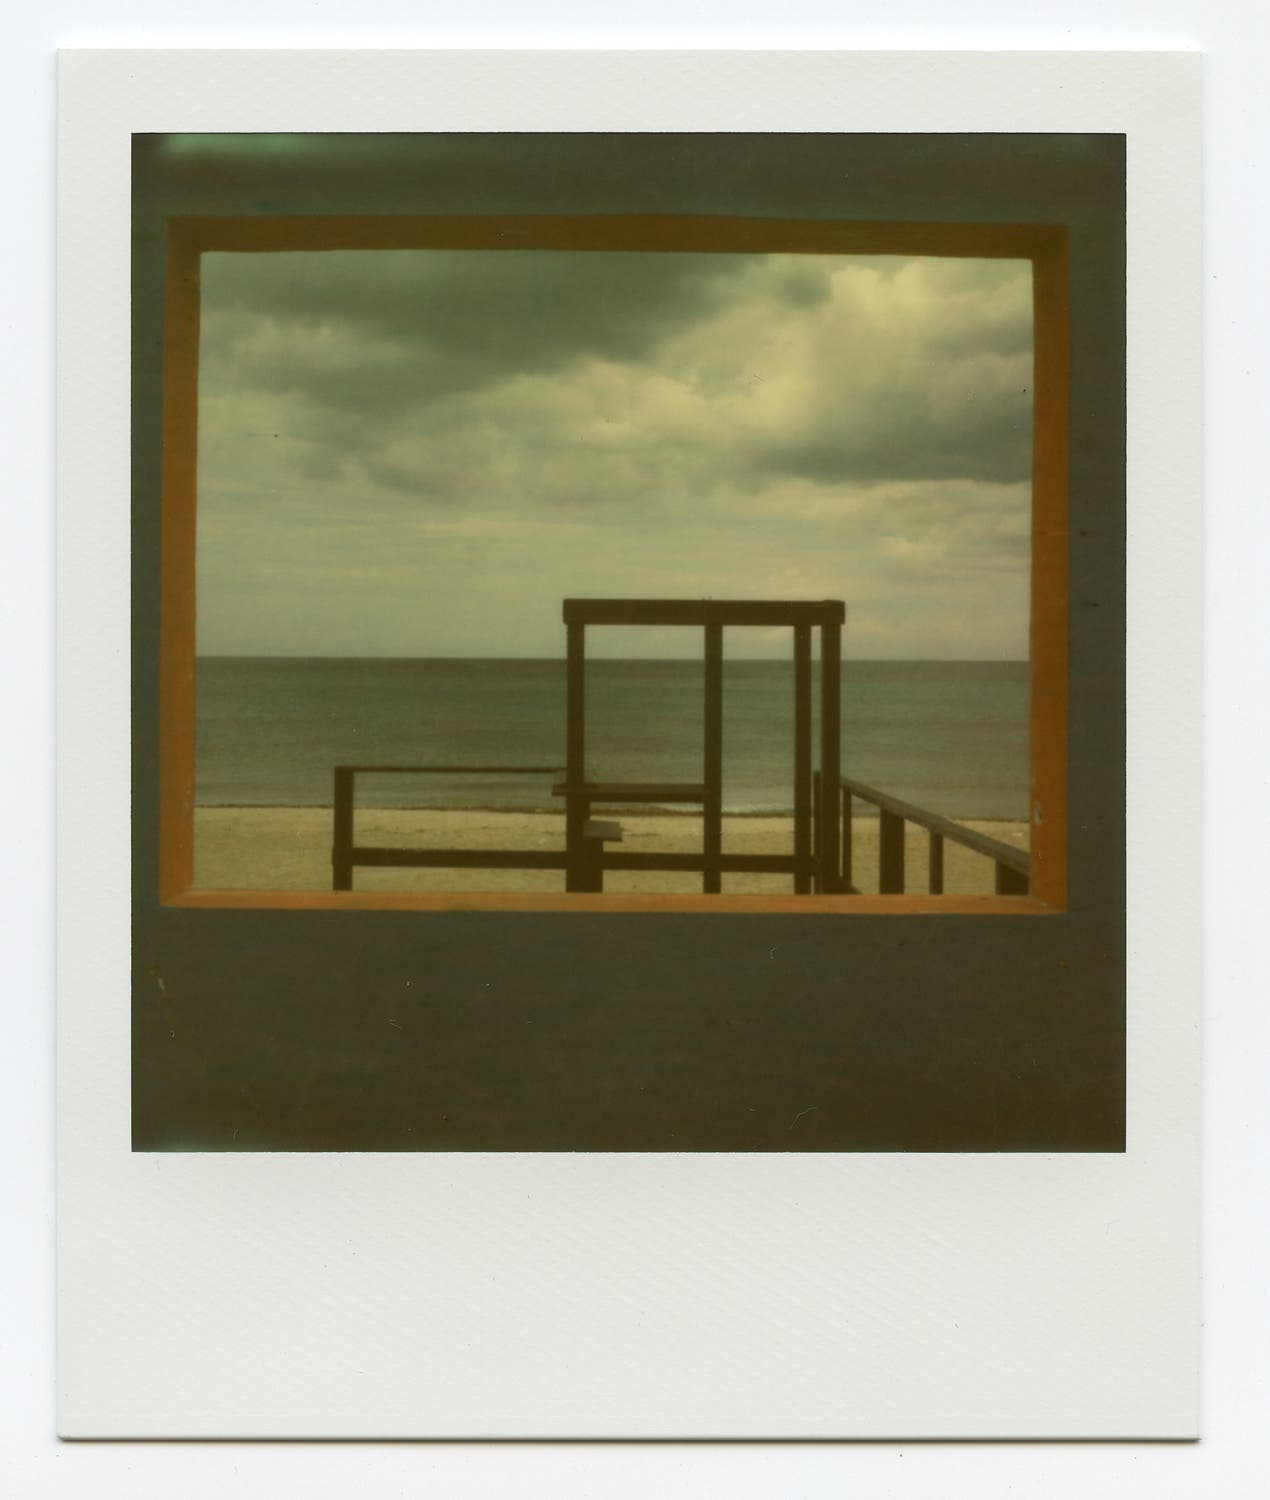 Lorenzo Papadia Explores Impermanence Using a Polaroid SX-70